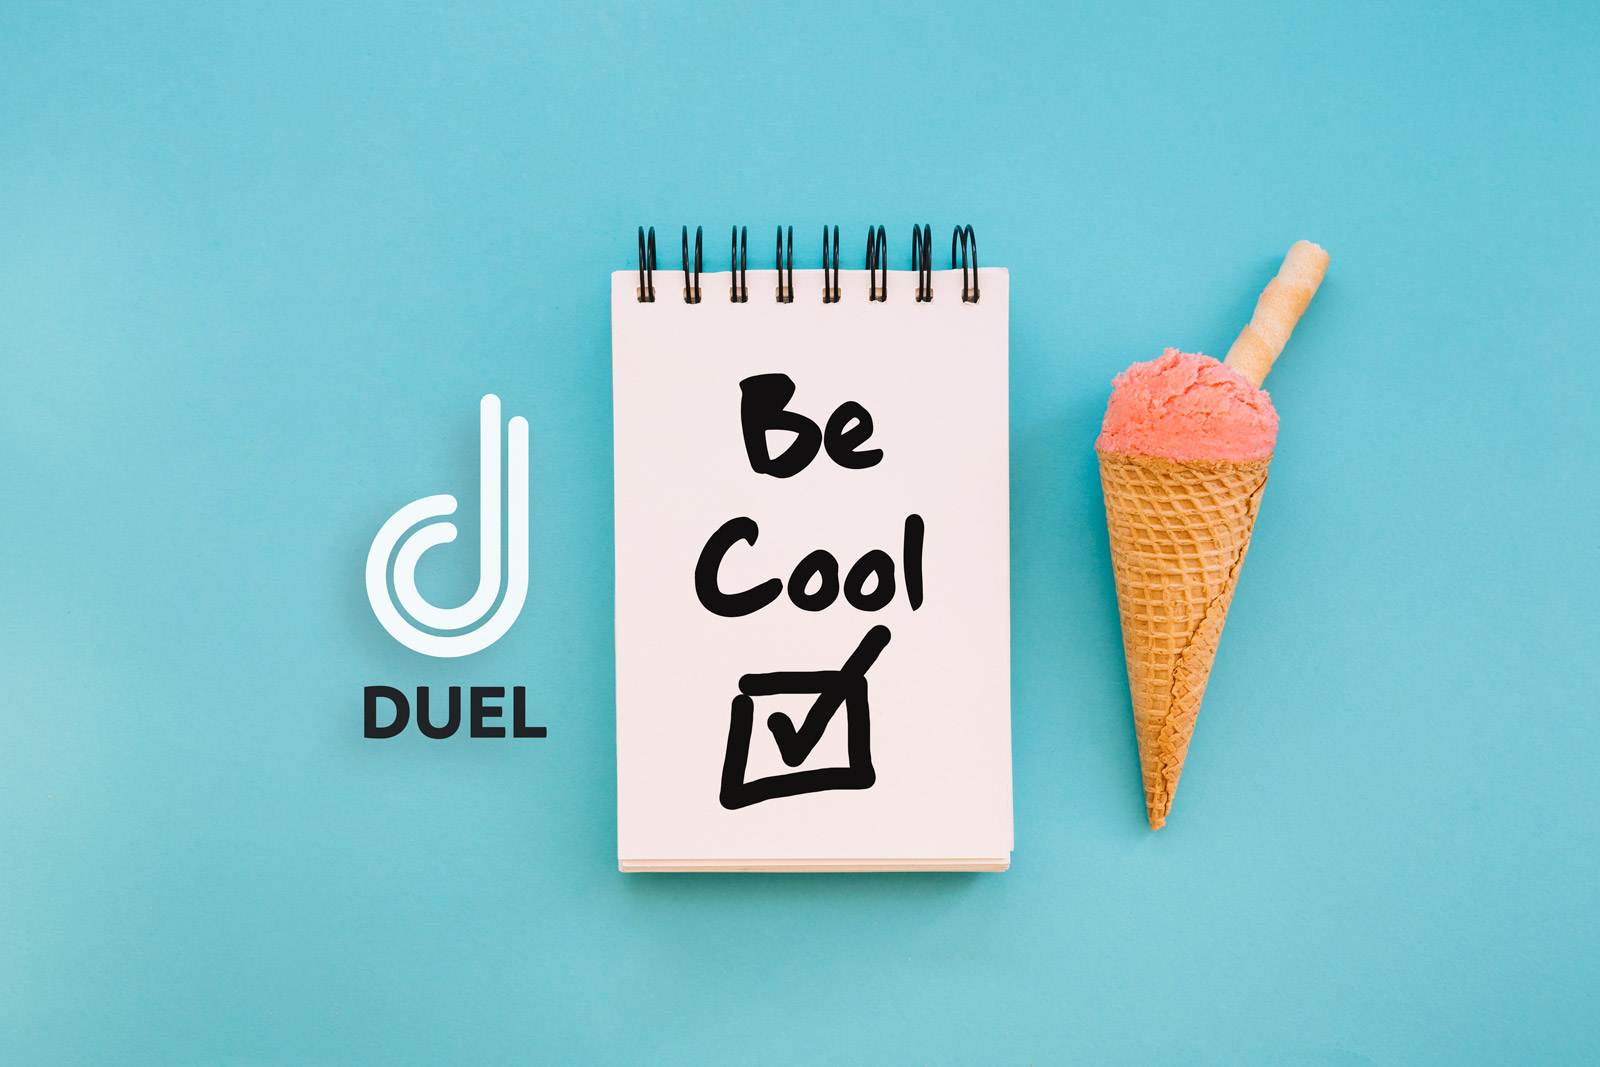 Duel is a 2018 Gartner Cool Vendor!